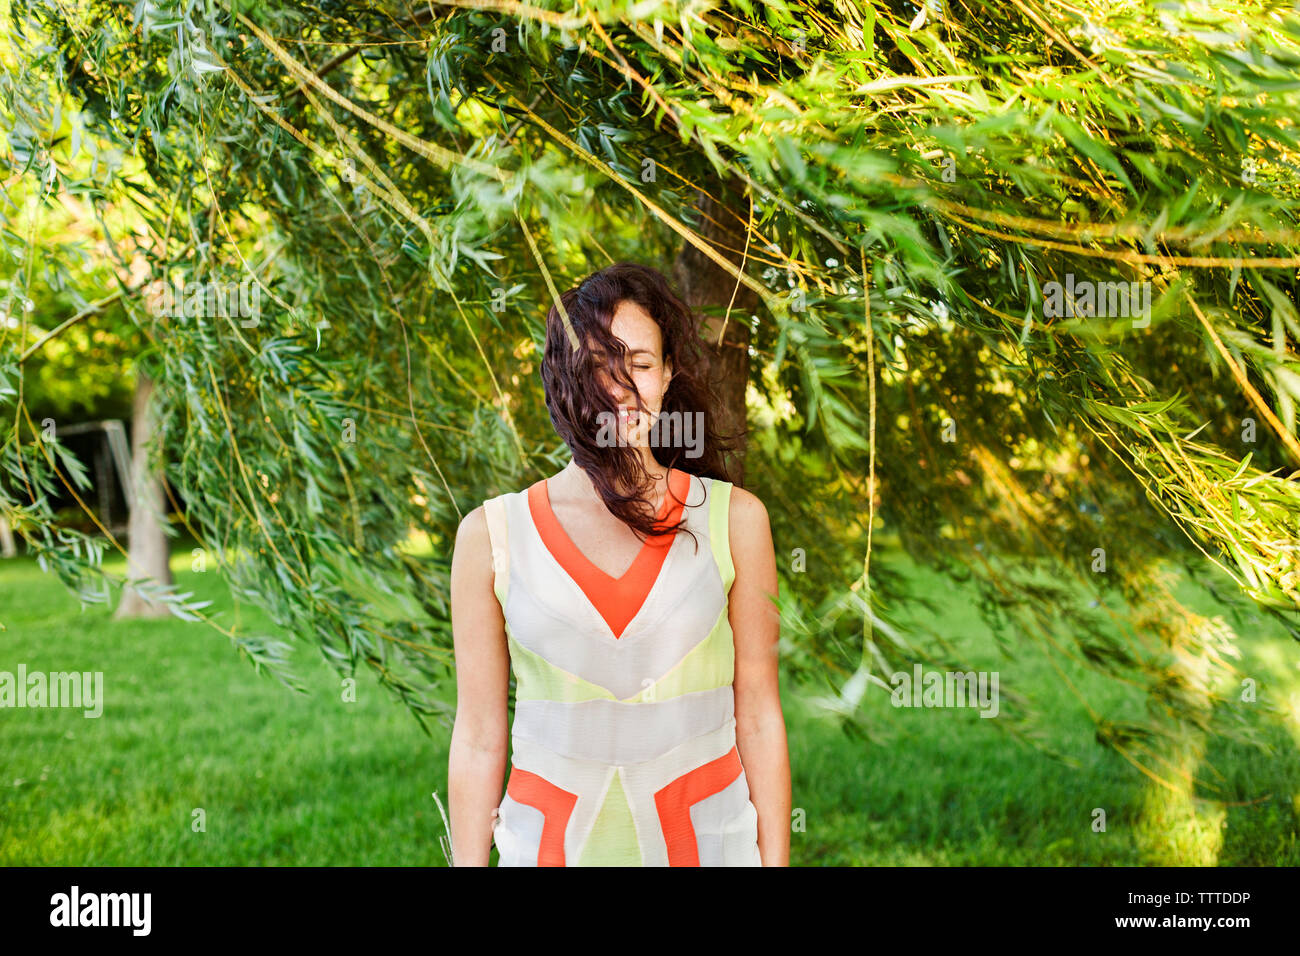 Happy woman standing under branches on field - Stock Image